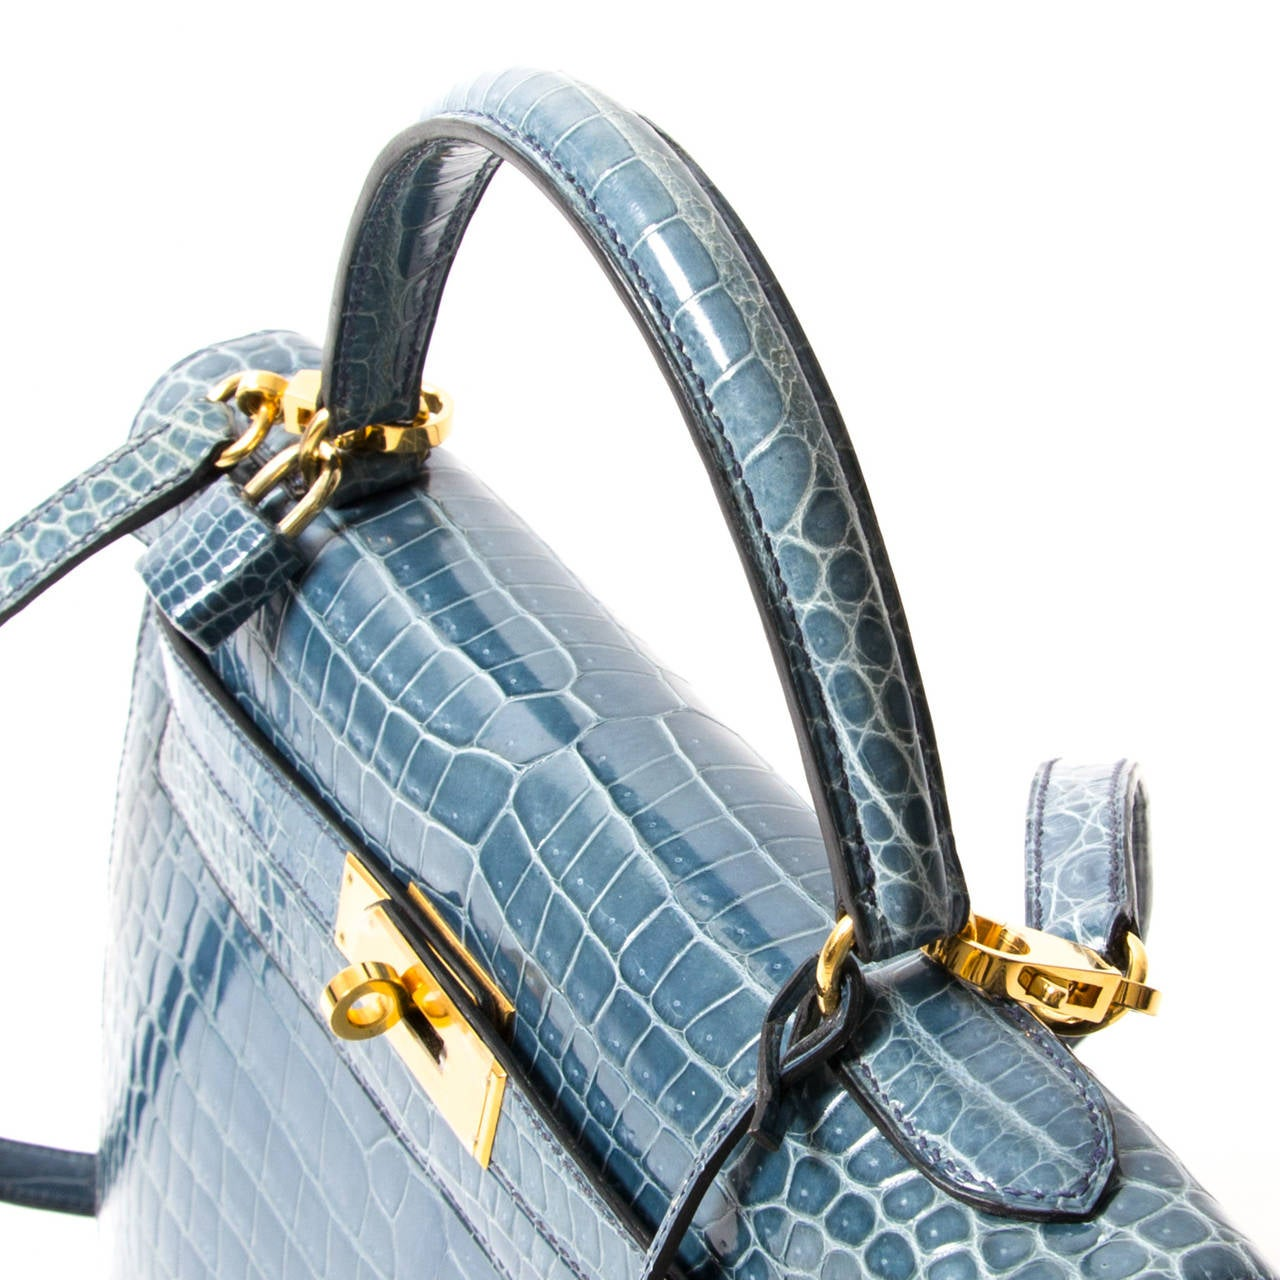 Rare Hermes Blue Jean Porosus Crocodile 32 Kelly GHW at 1stdibs